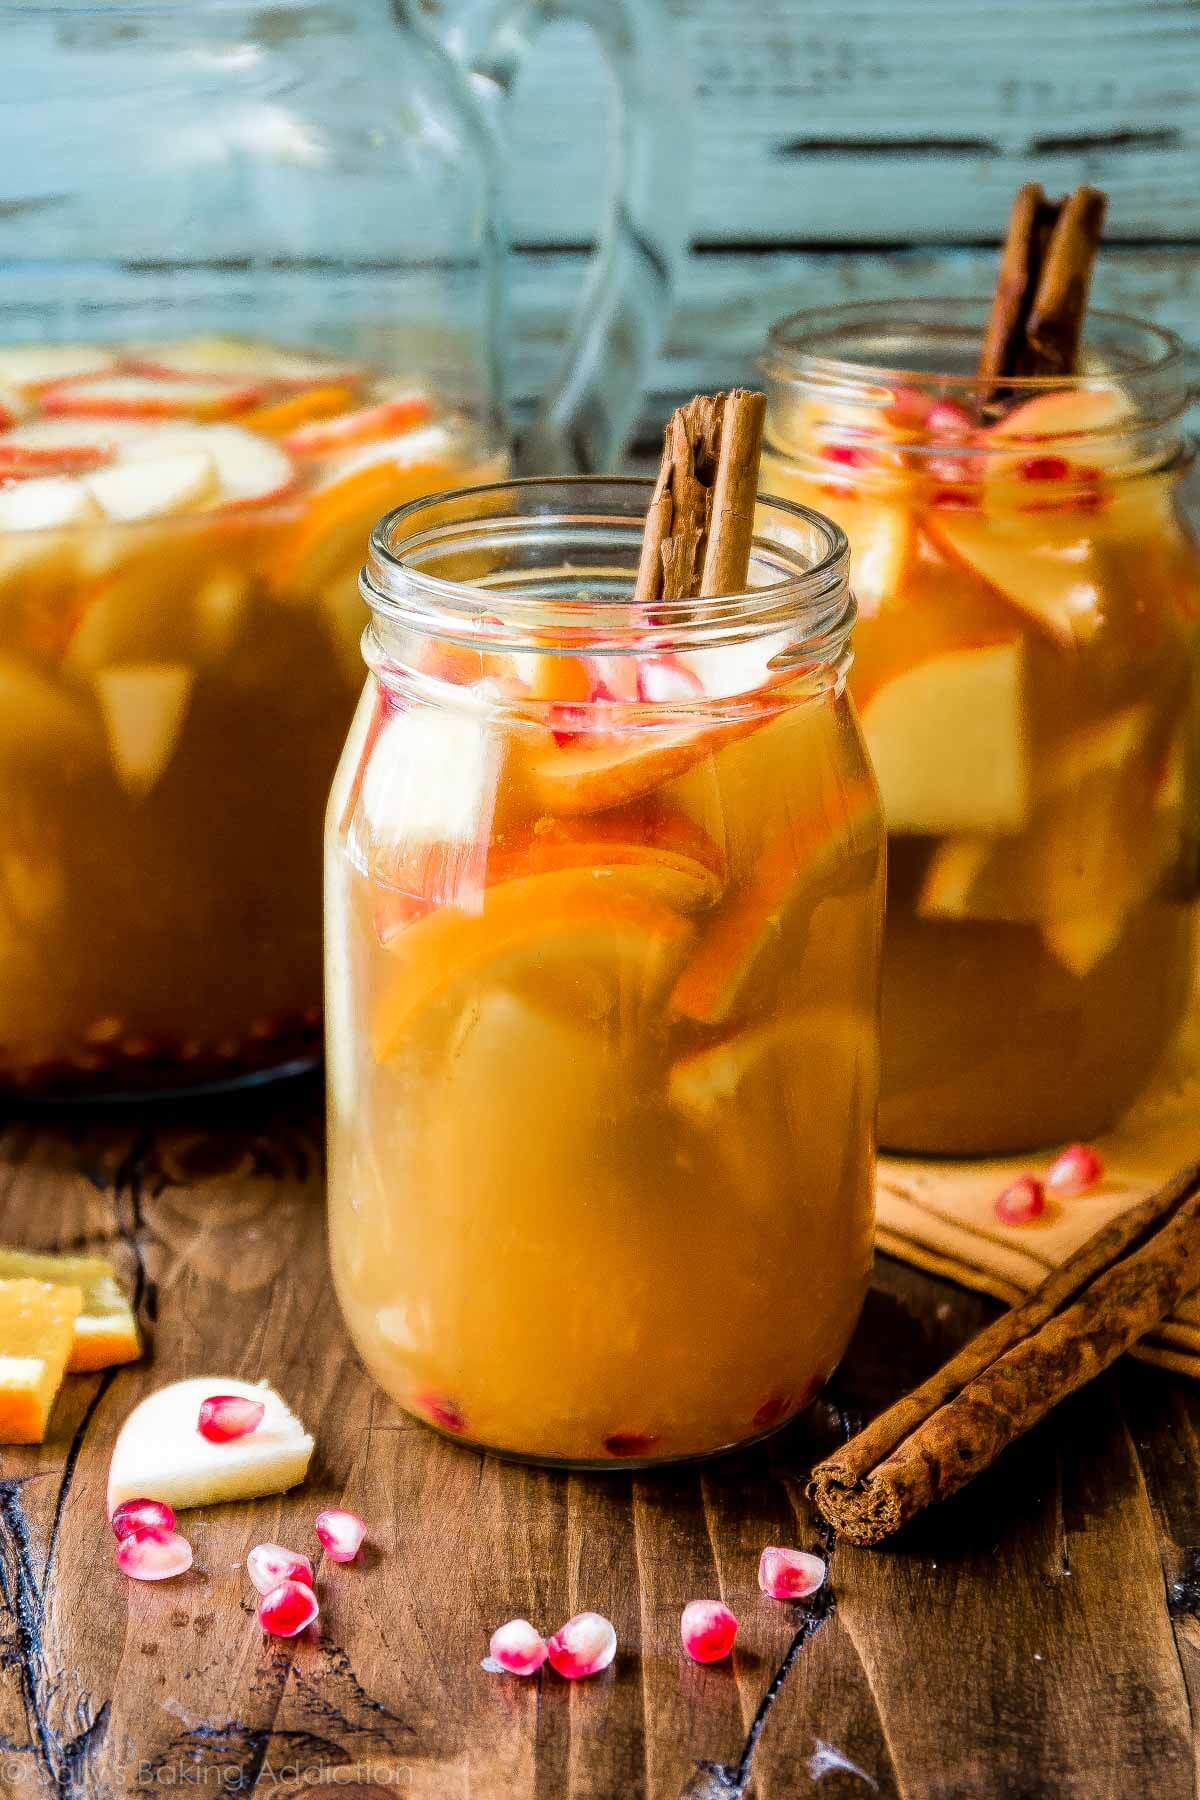 Cooking apple cider: a recipe for excellent wine